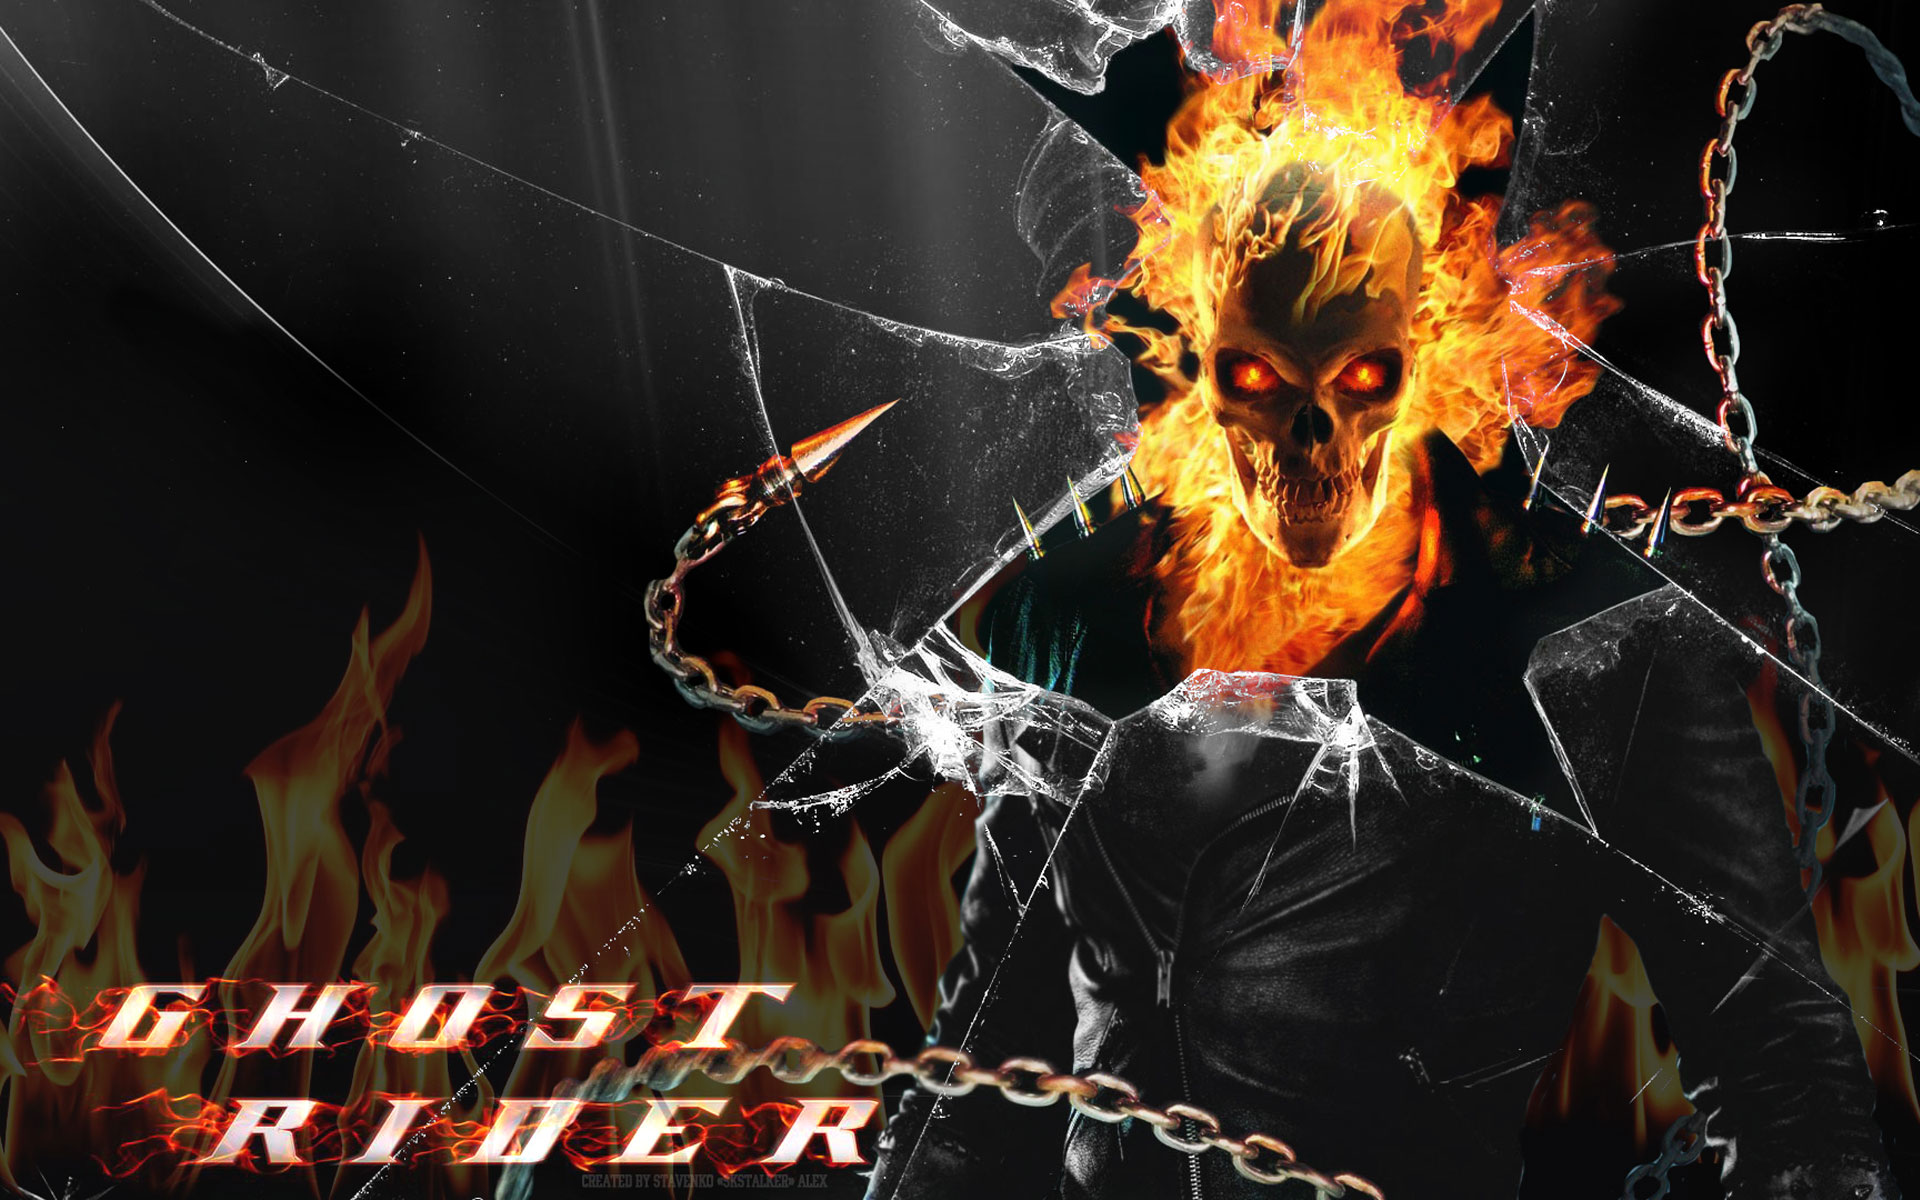 Hd Wallpapers Ghost Rider Bike 1600 X 1000 159 Kb Jpeg HD Wallpapers 1920x1200